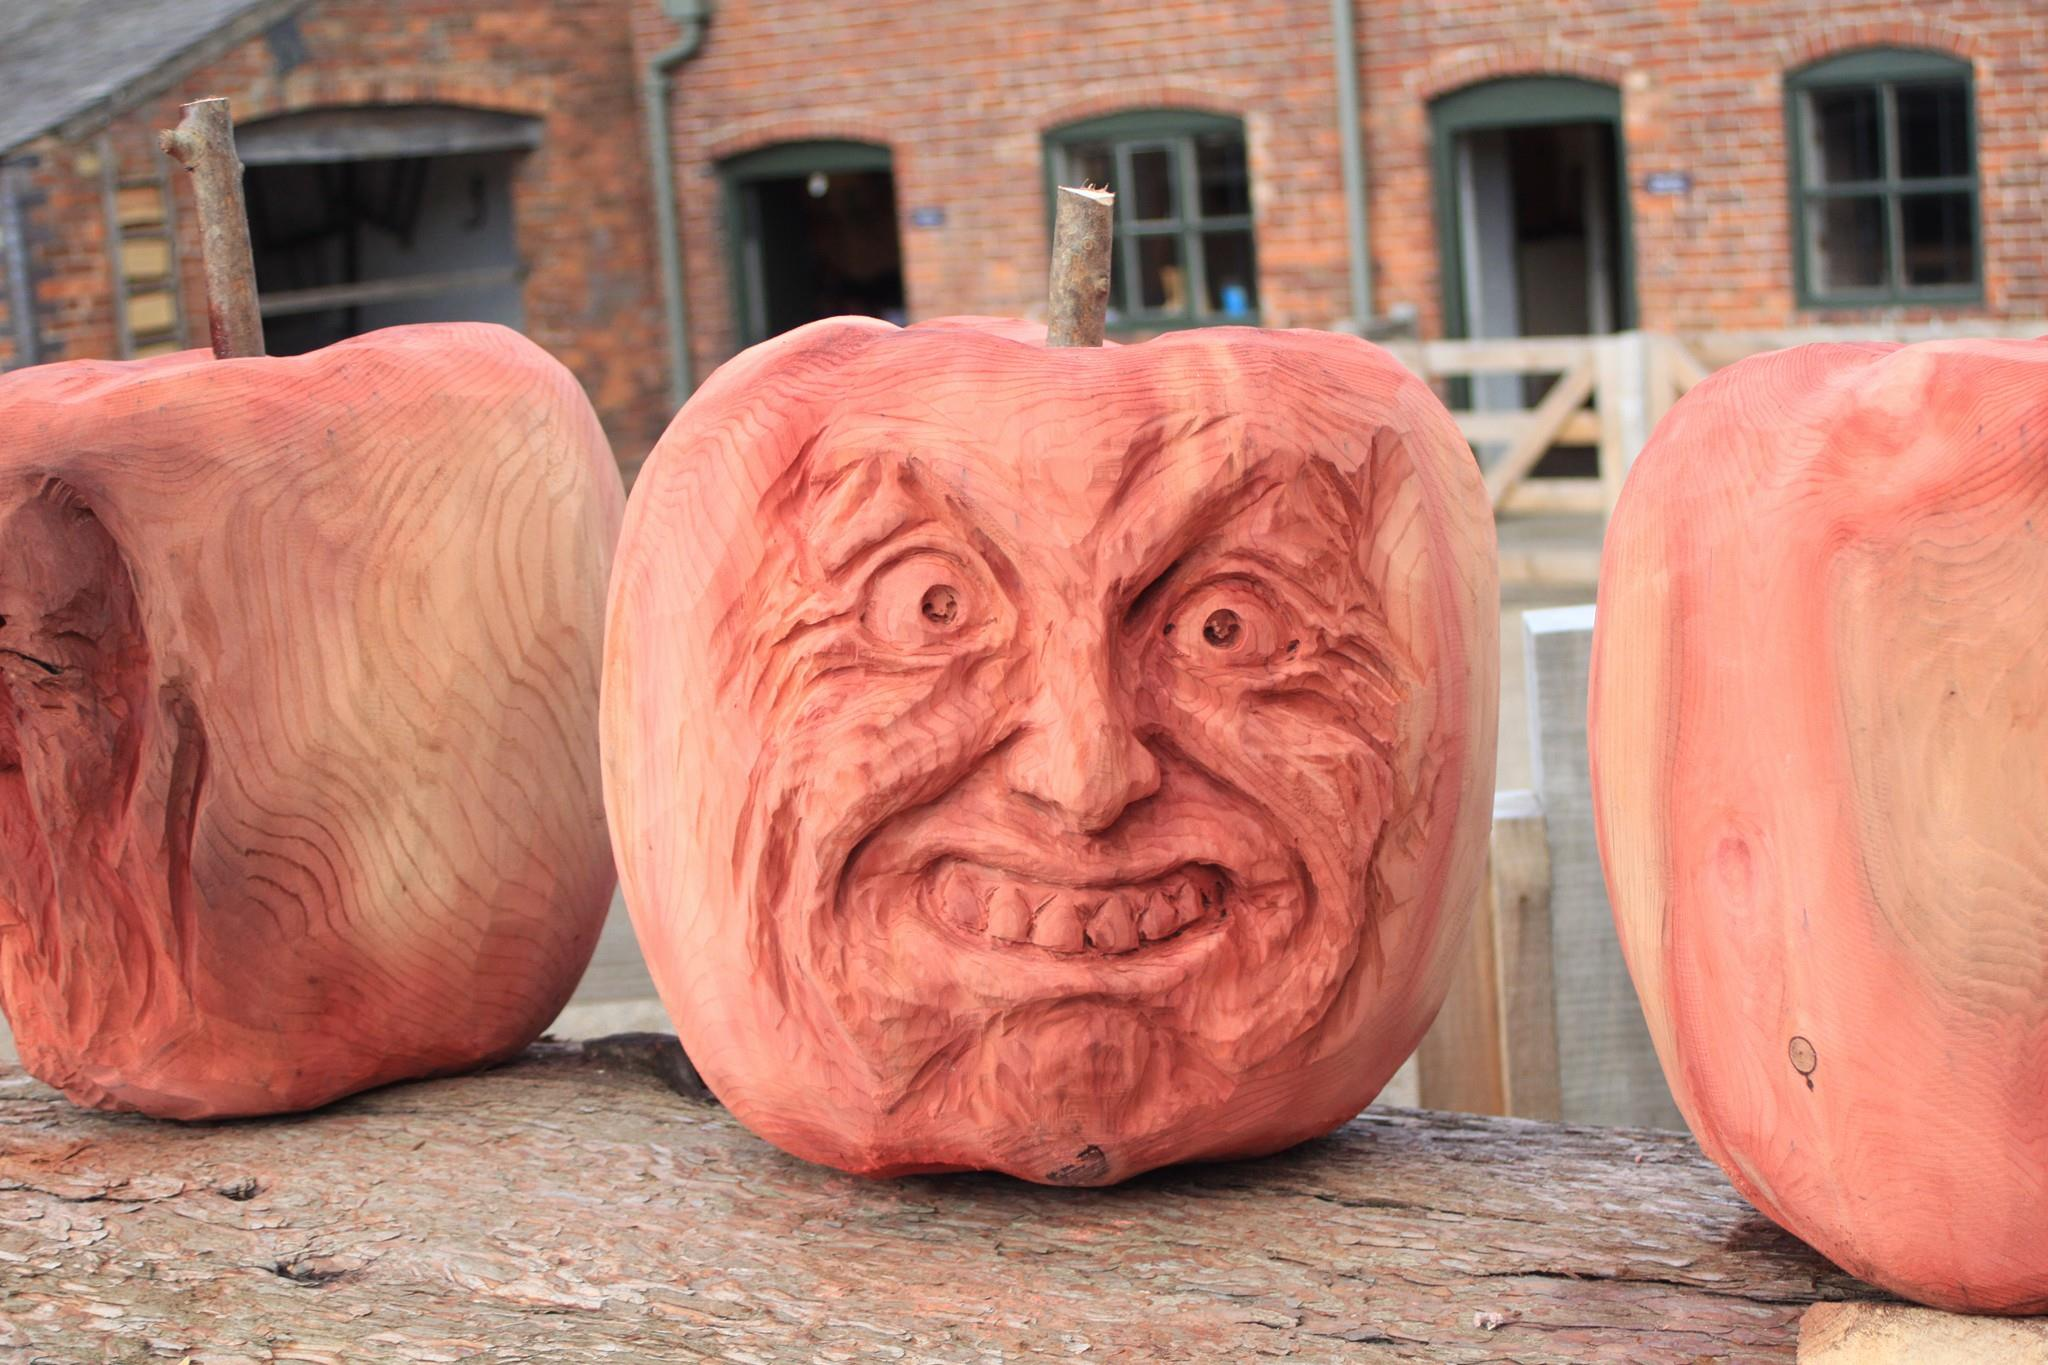 a wooden apple is carved to look like a halloween pumpkin. part of the erddig apple sculpture trail by simon o rourke